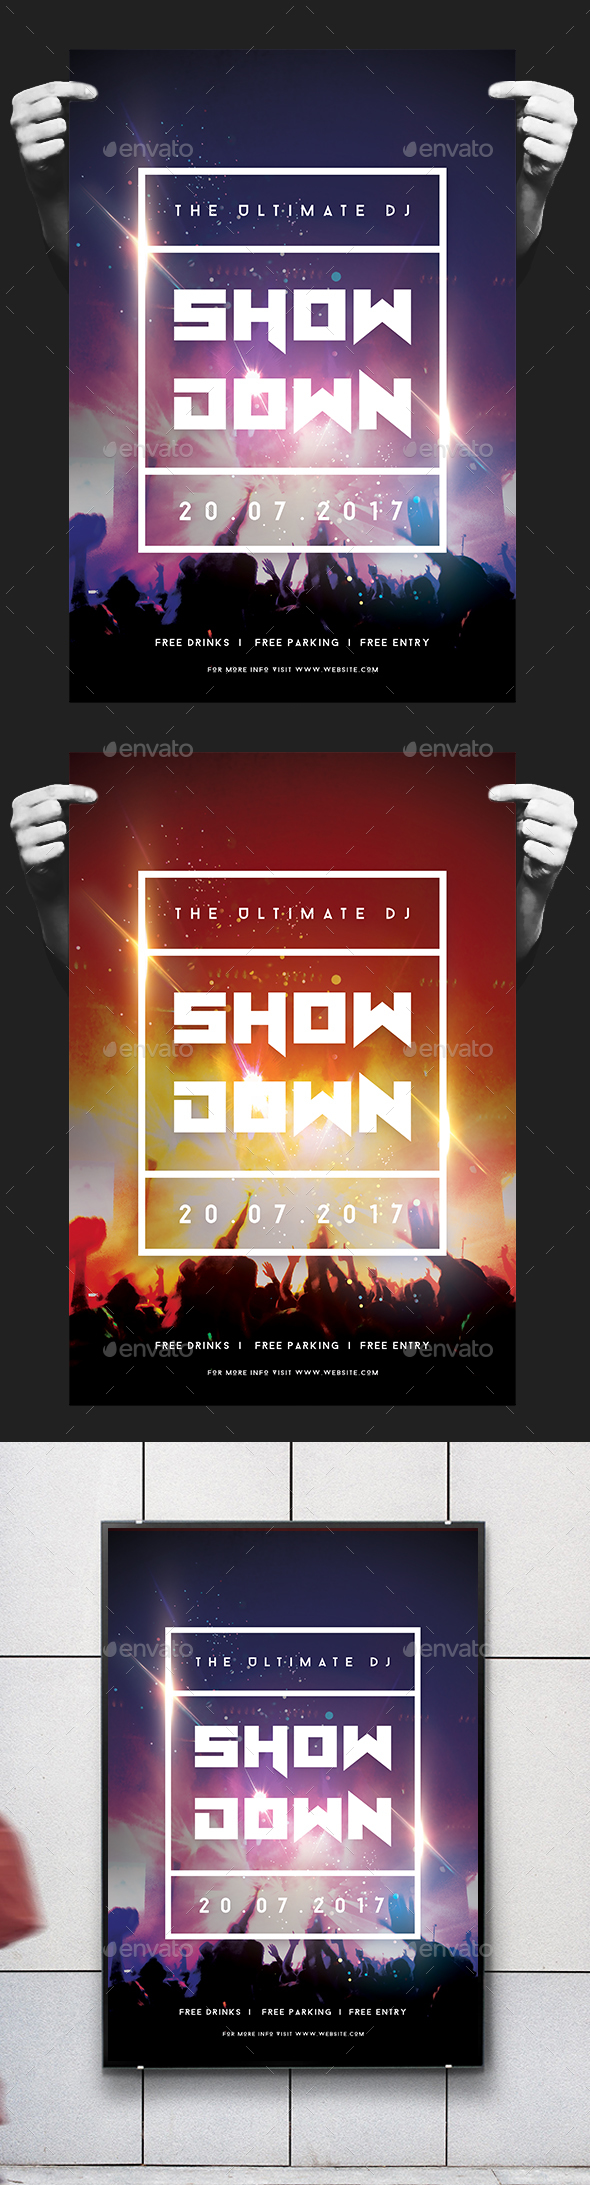 DJ Showdown Flyer / Poster - Concerts Events